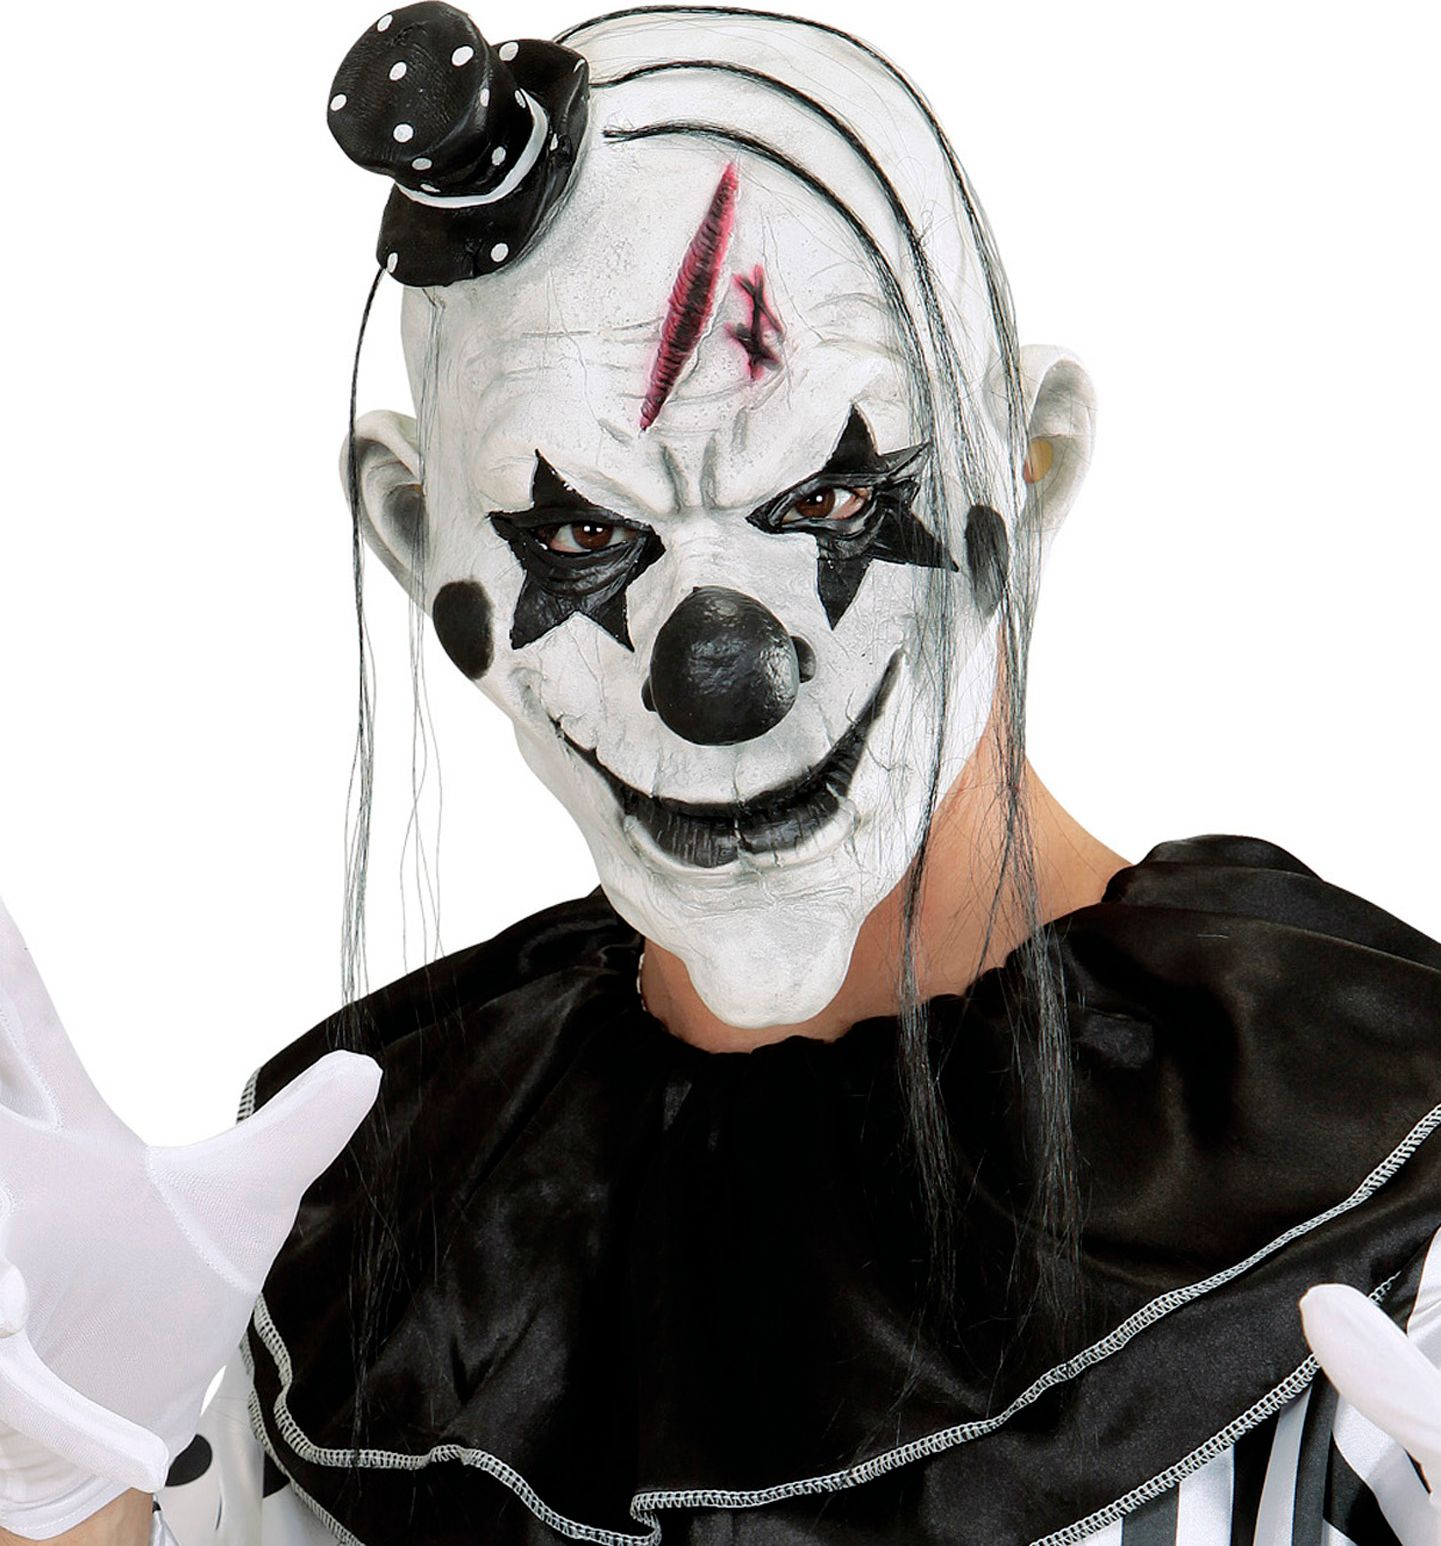 Wit killer clown masker